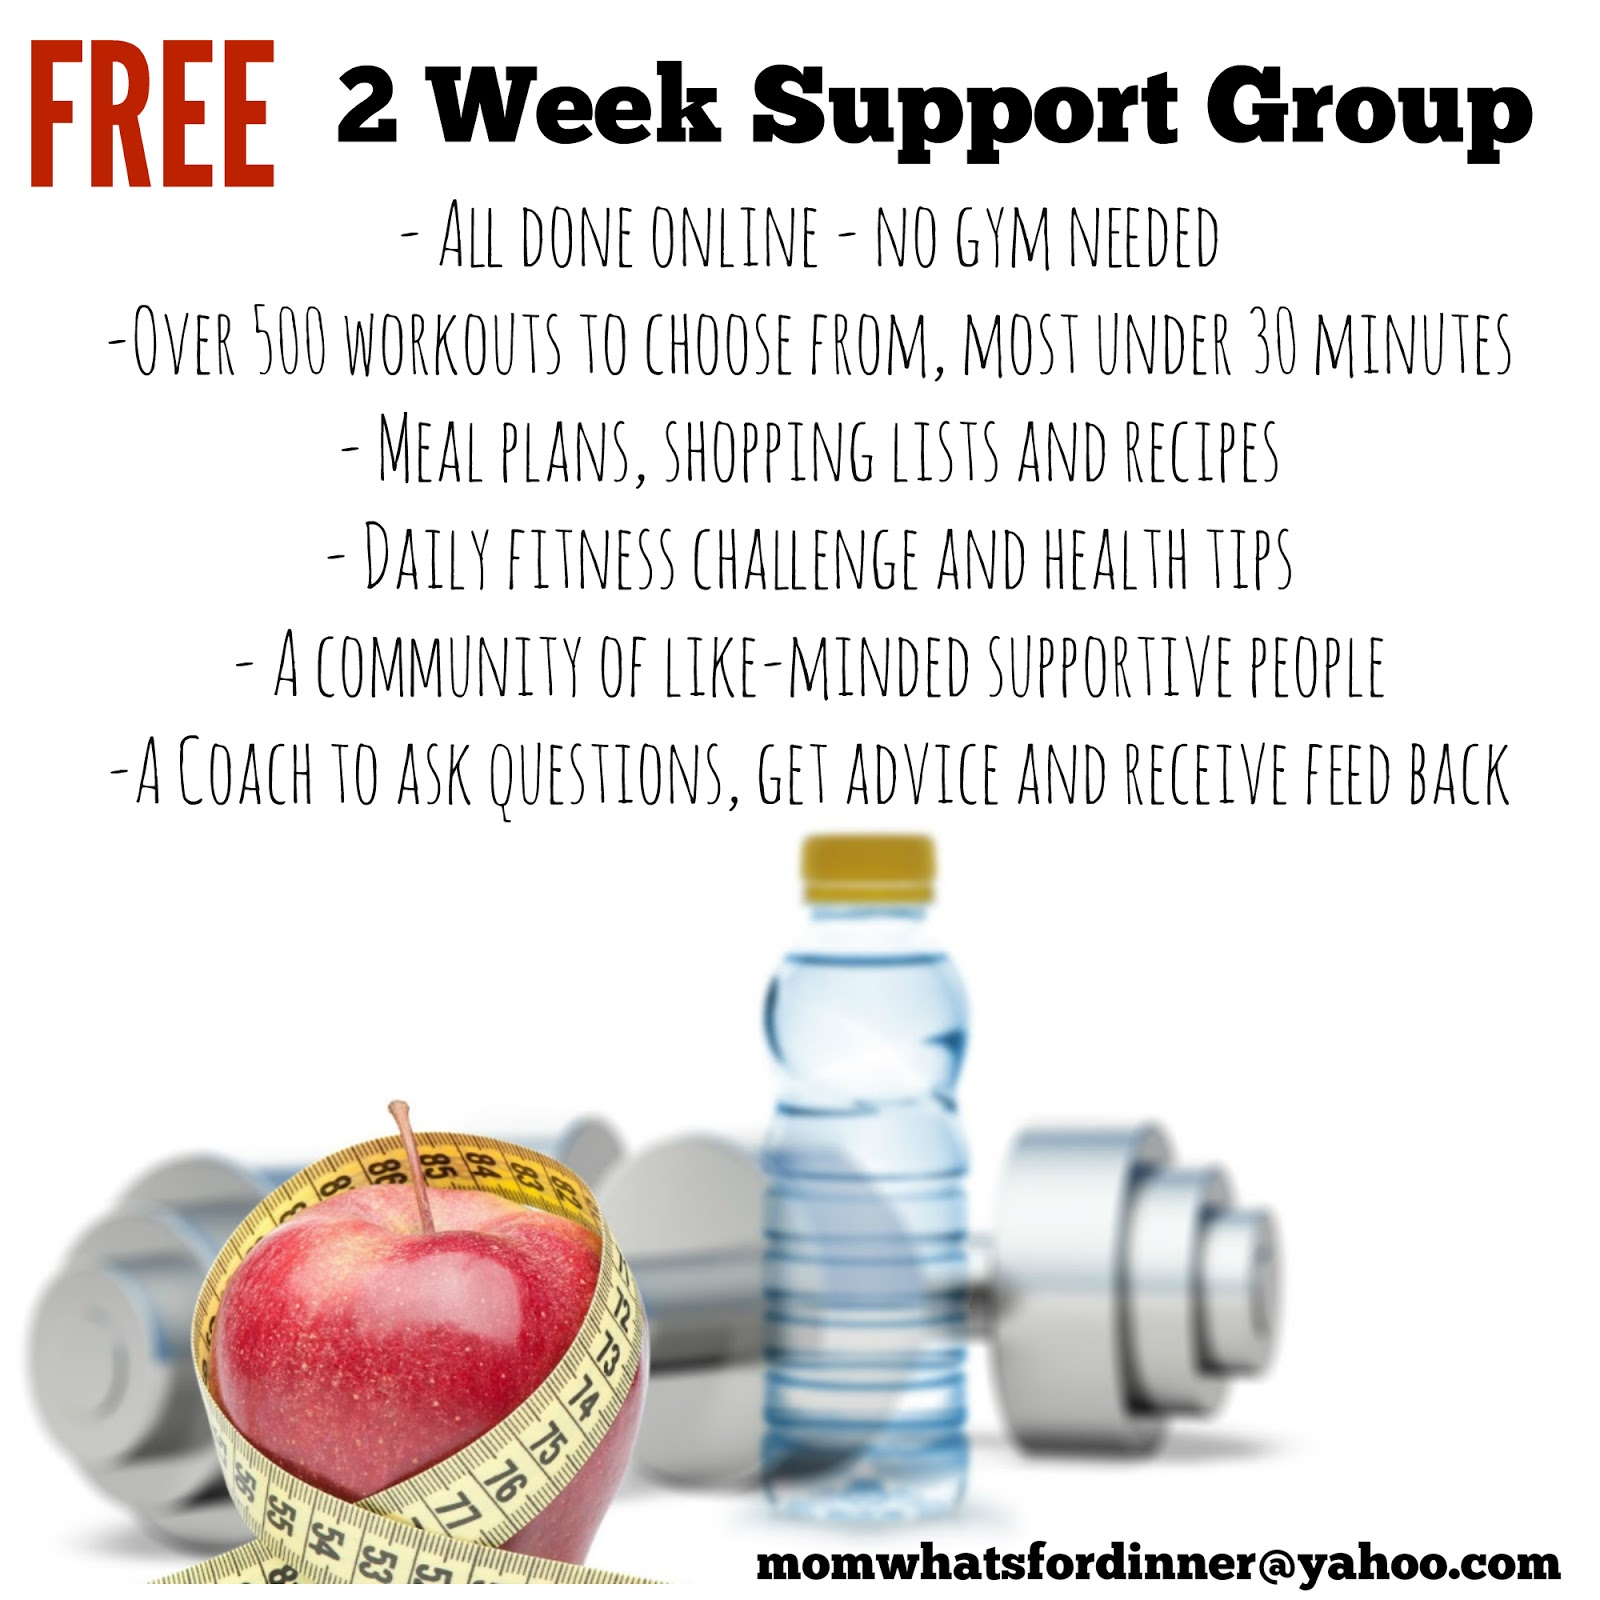 Free 2 week support group for exercise and weightloss